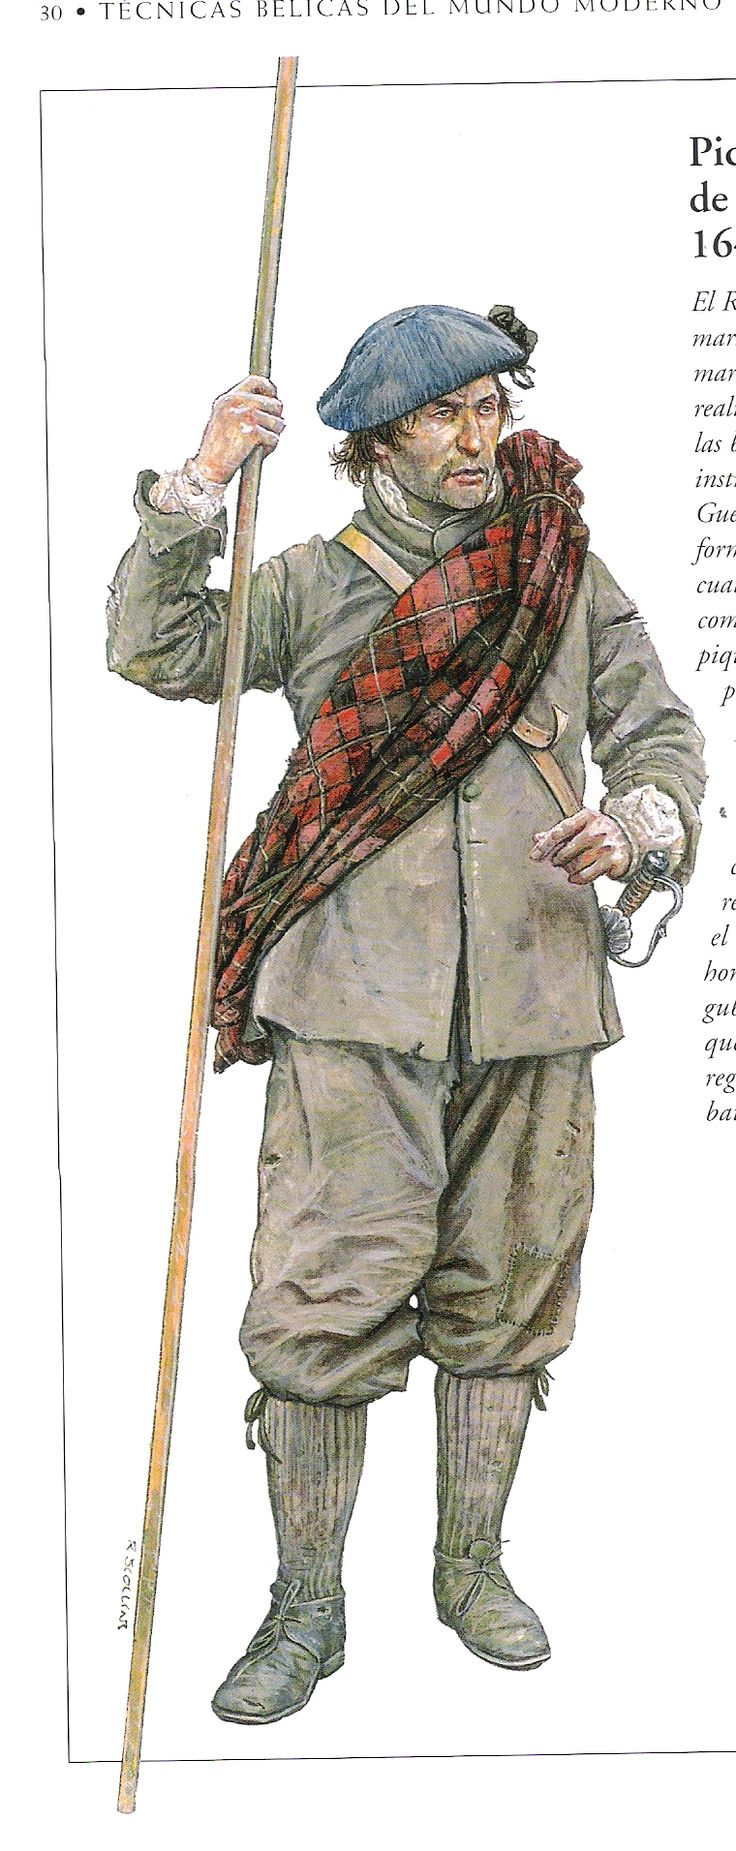 Scottish royalist pikeman of the English Civil War